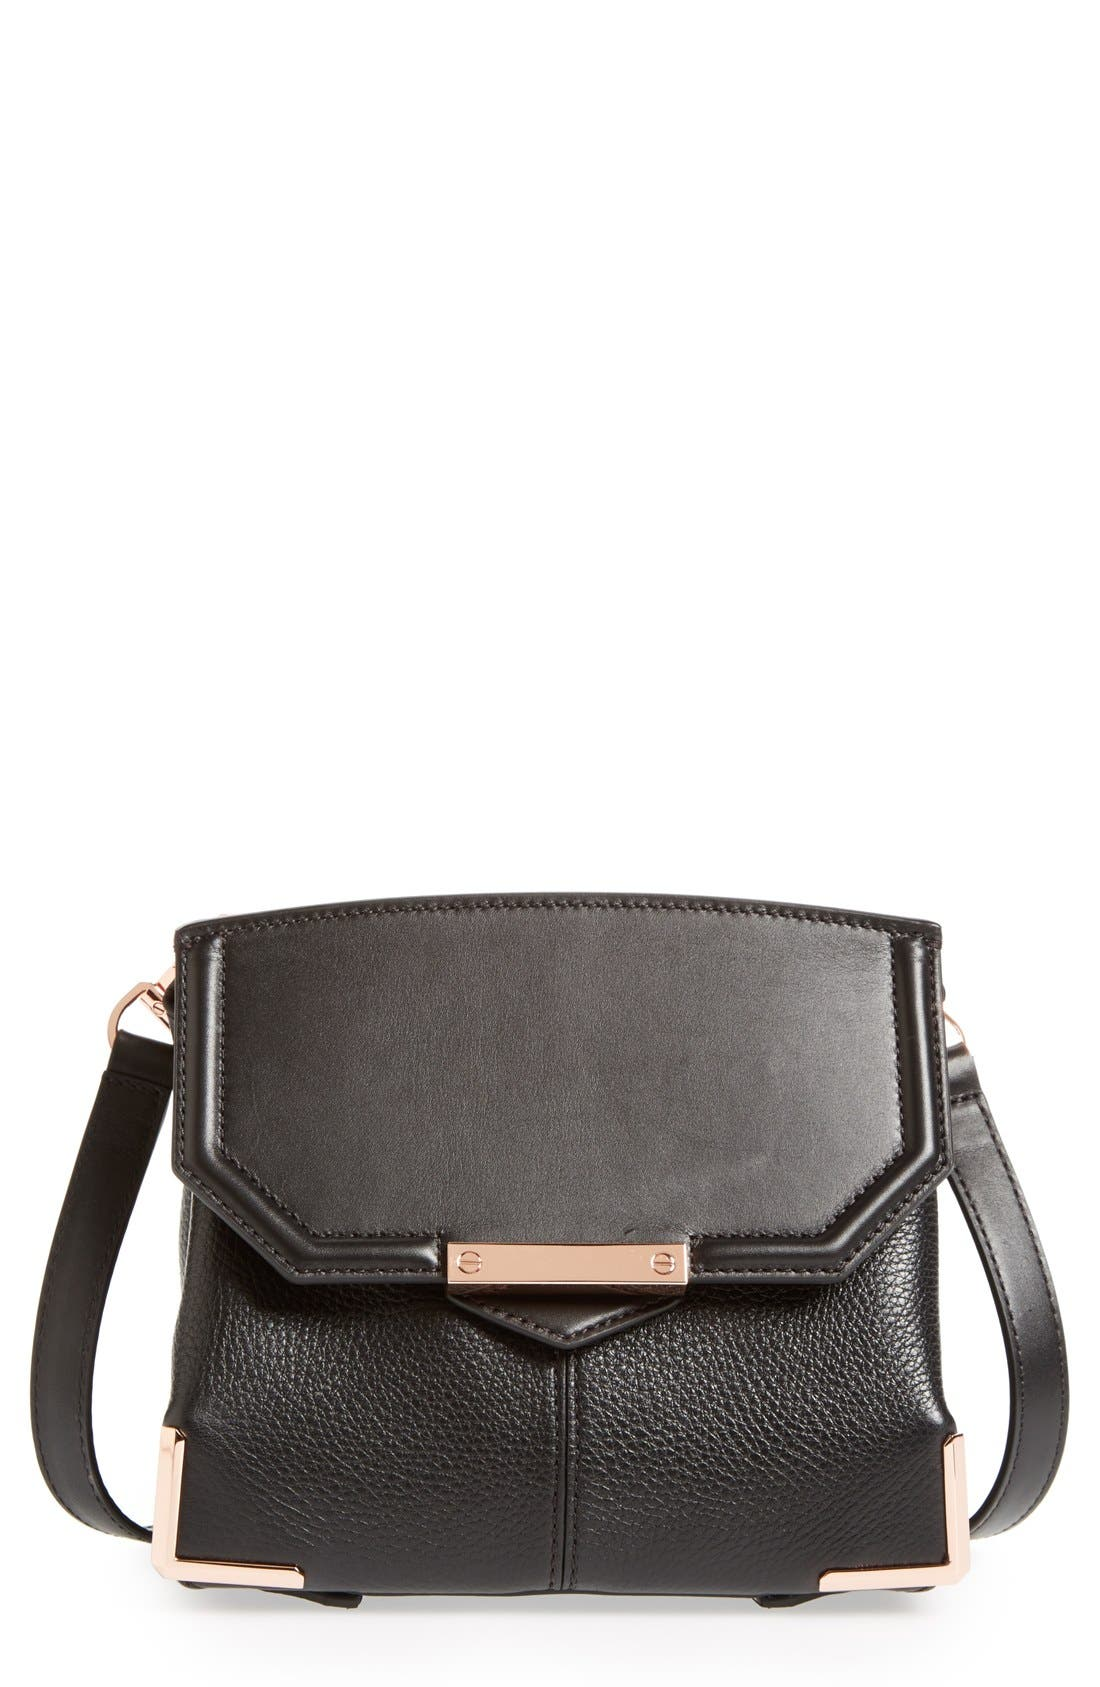 Alternate Image 1 Selected - Alexander Wang 'Marion Prisma' Leather Crossbody Bag